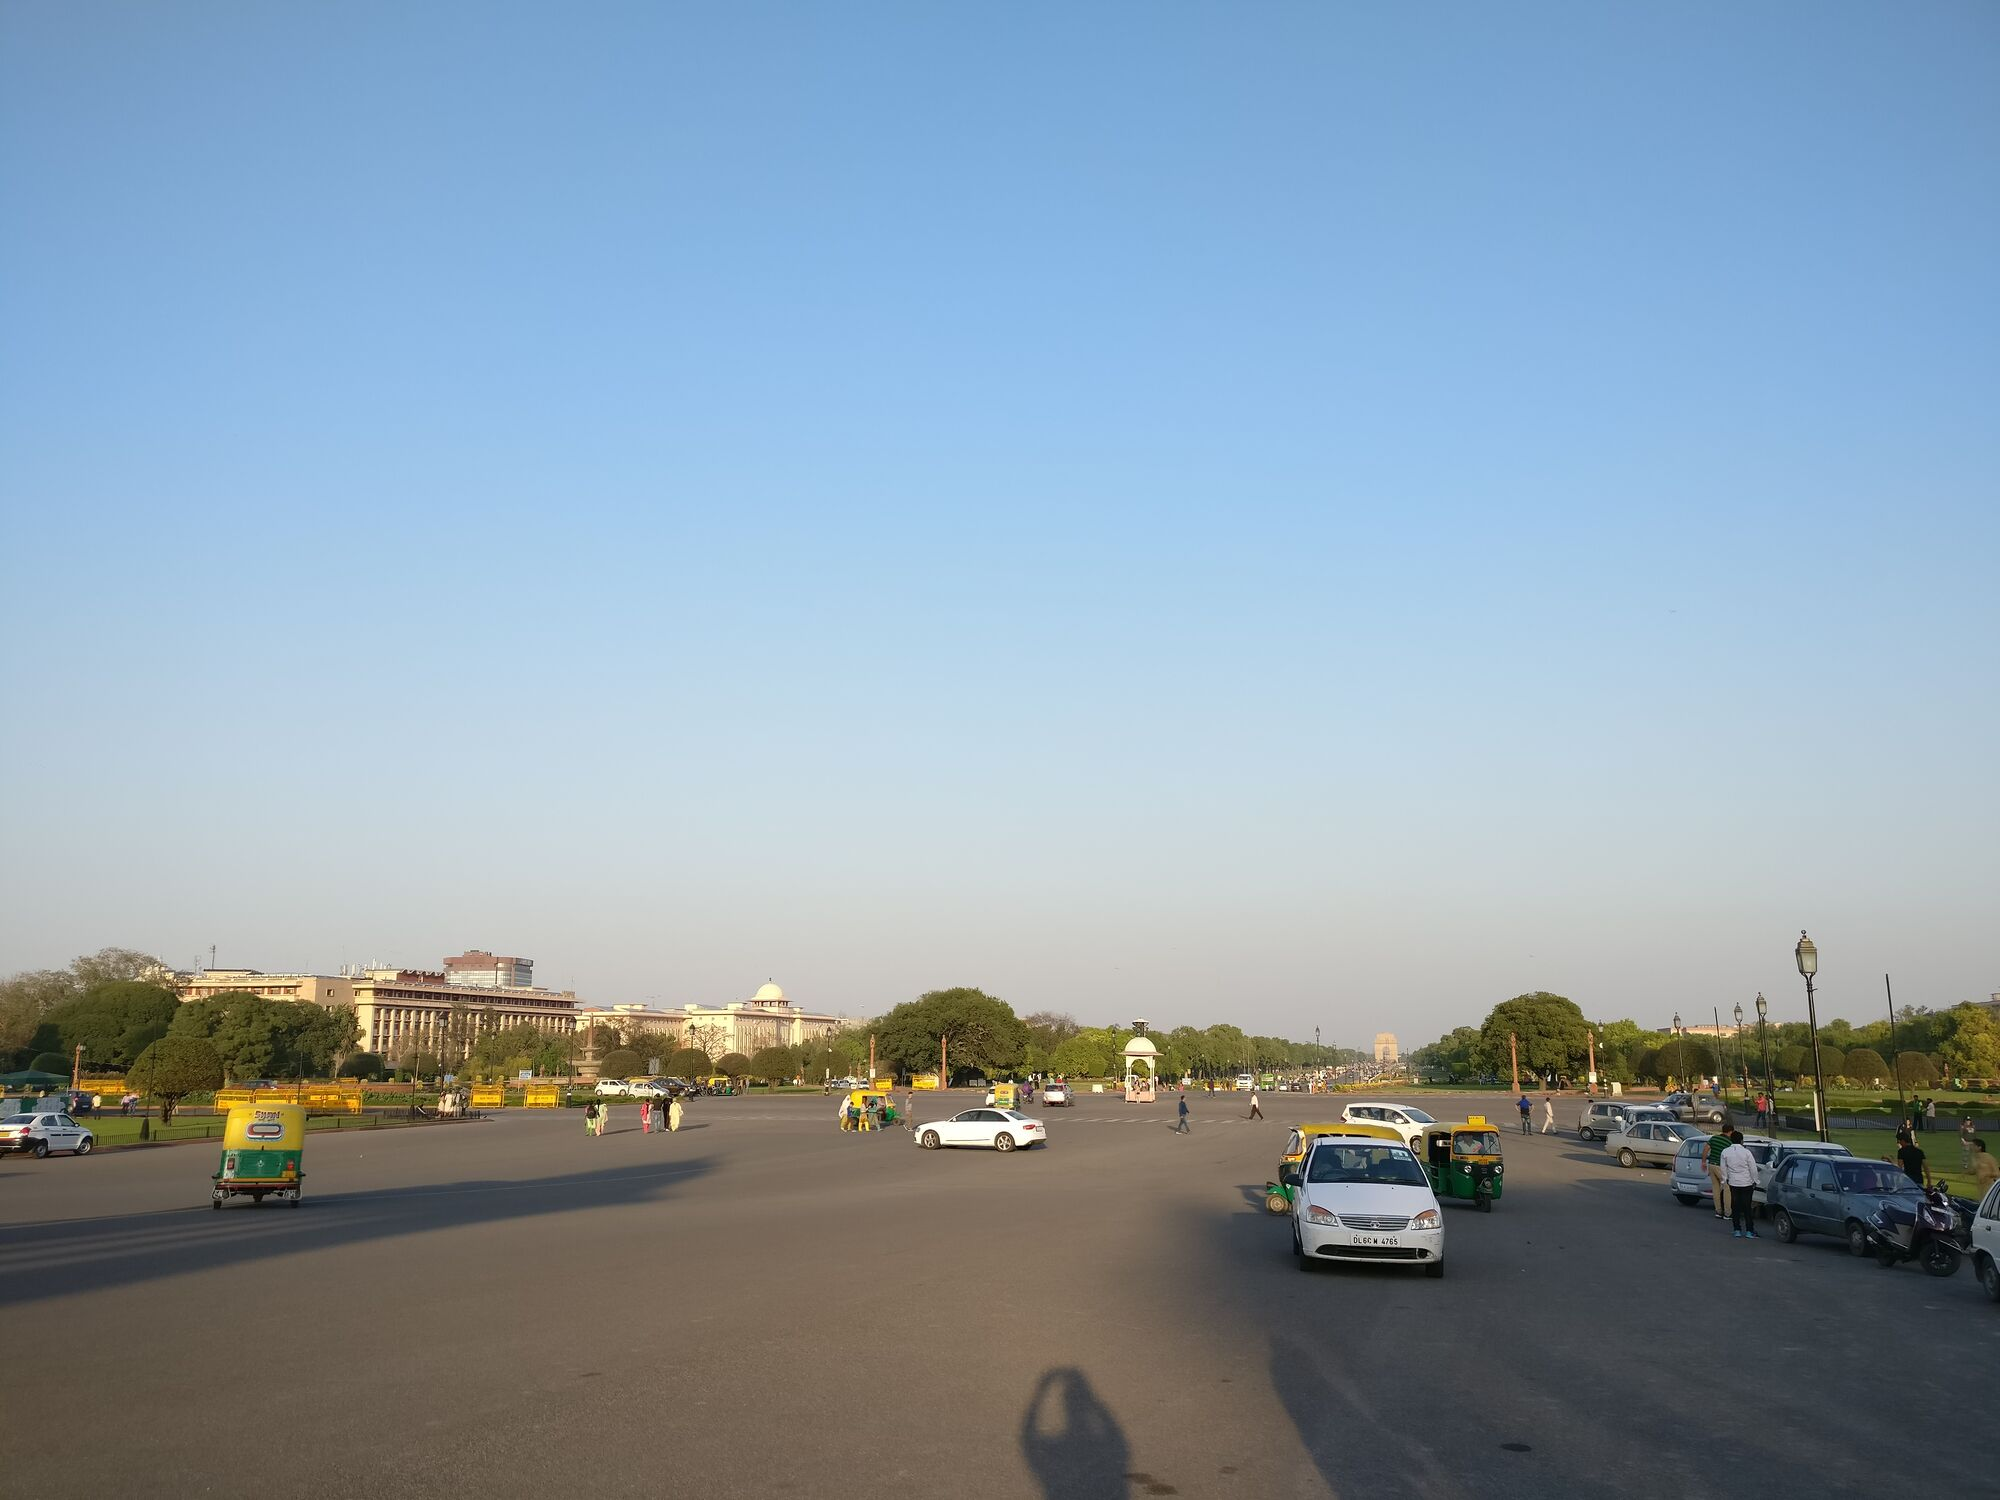 View of the Rajpath (ceremonial boulevard in New Delhi) from the Raisina Hillside, towards India Gate which is on the Eastern end of the Rajpath.